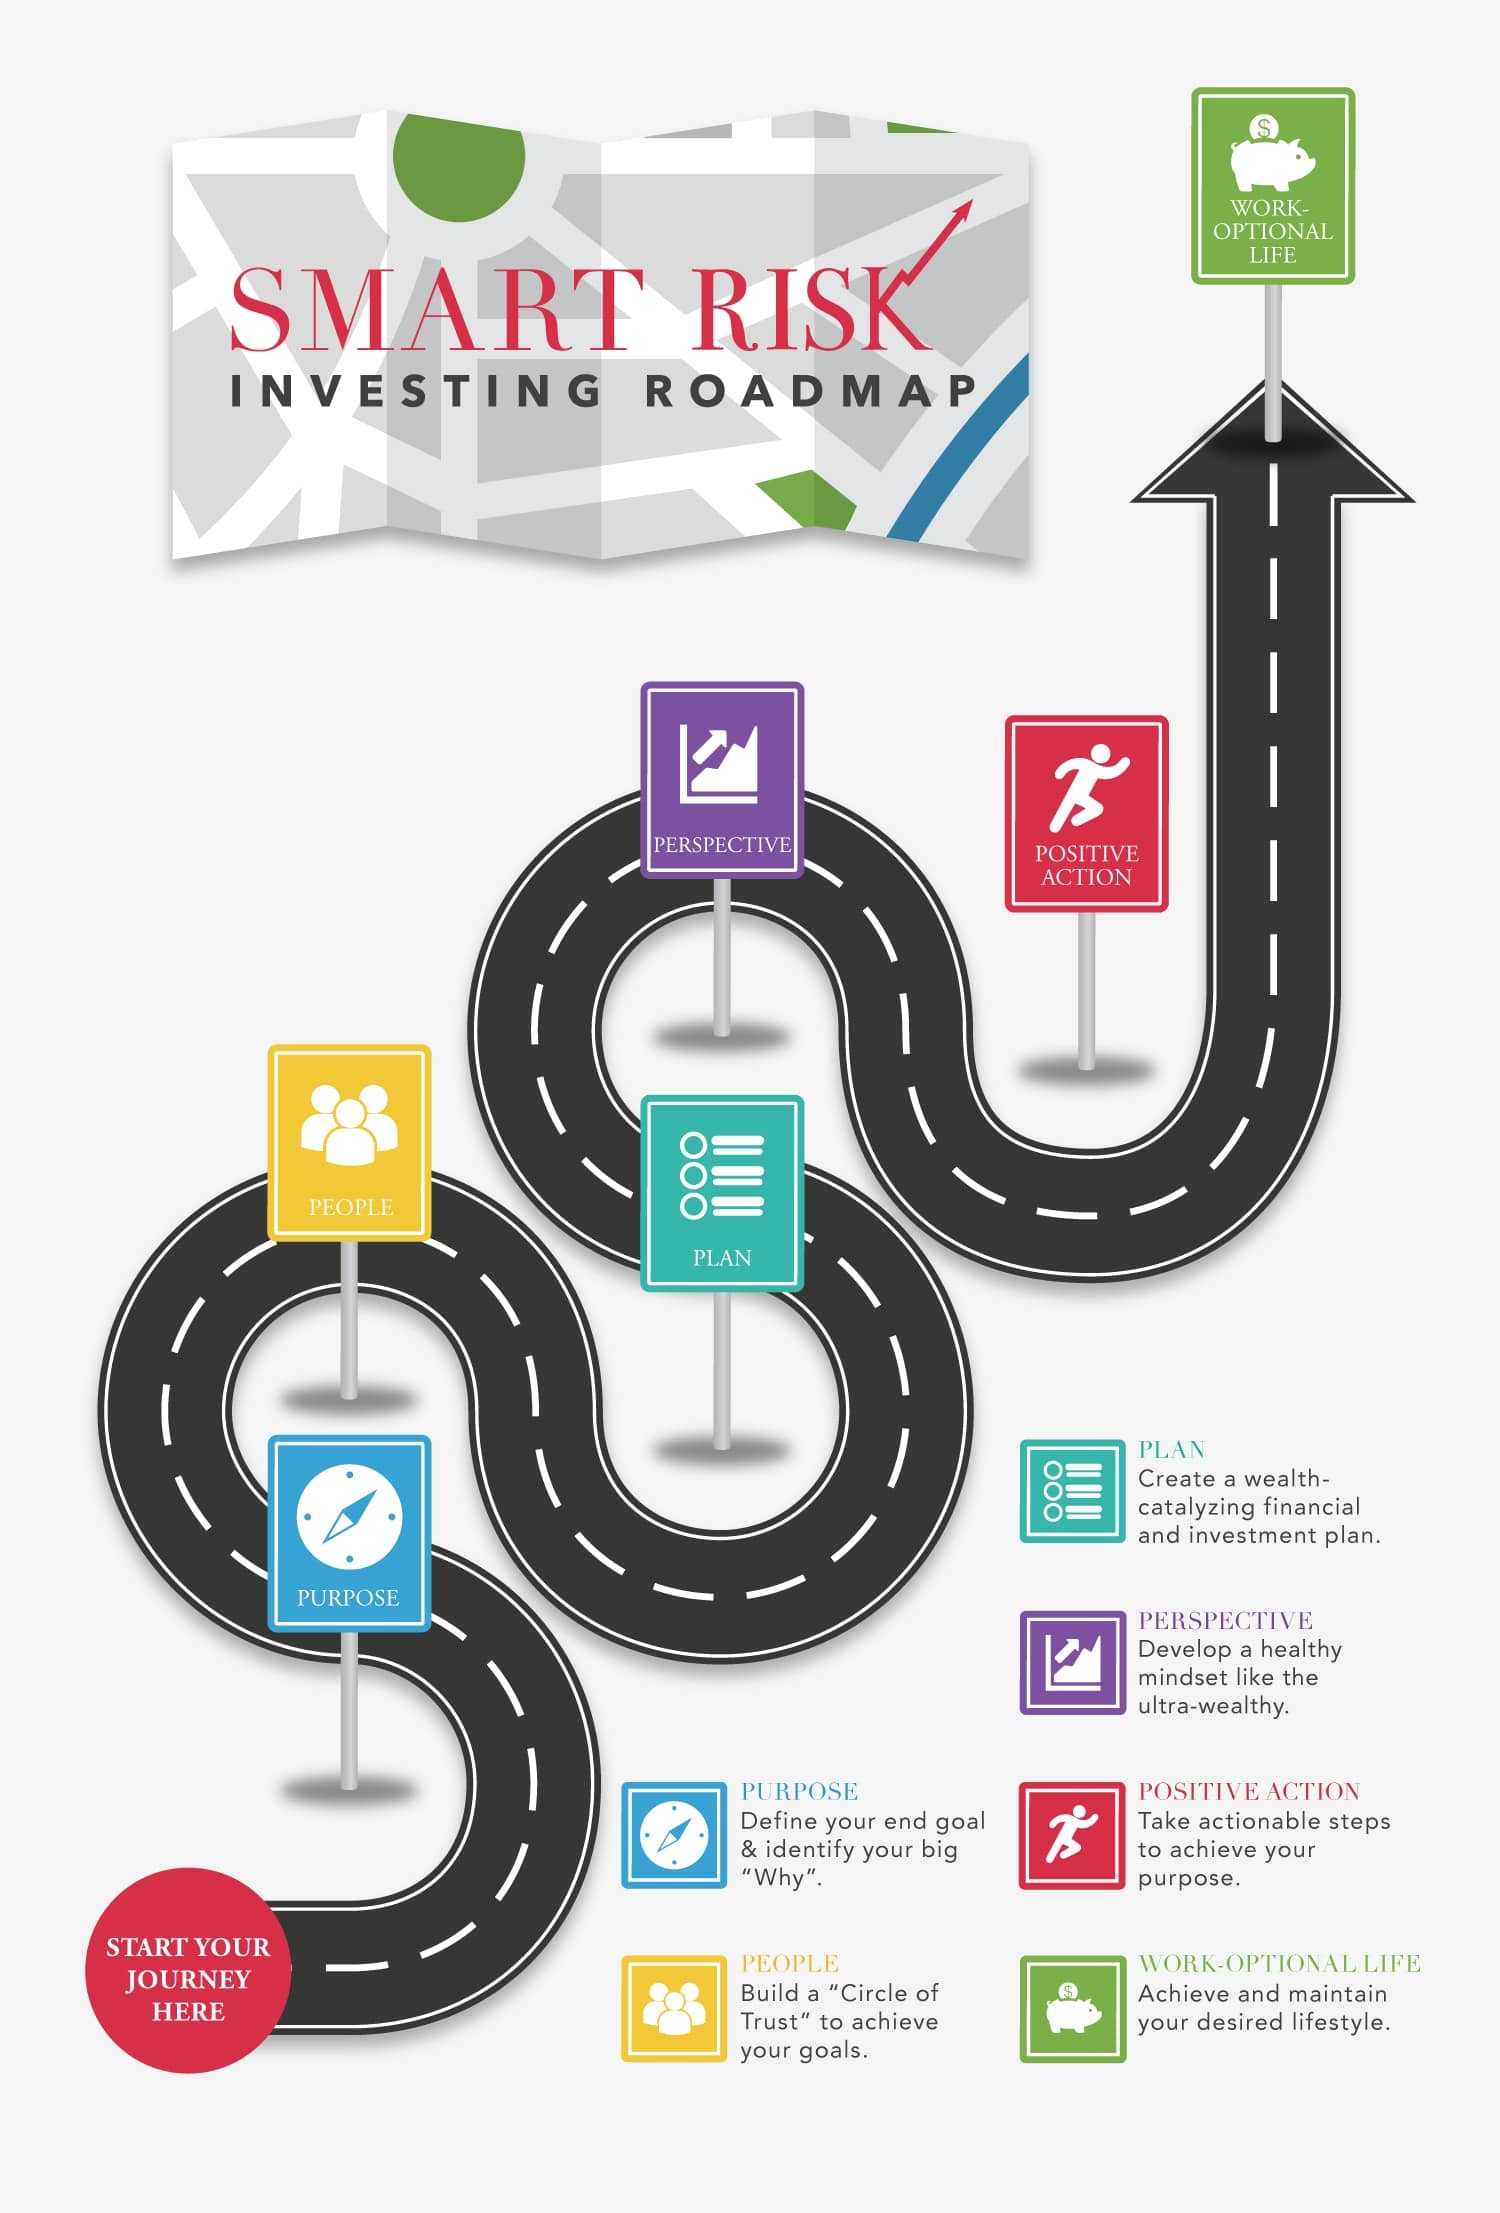 The Smart Risk Investing Approach